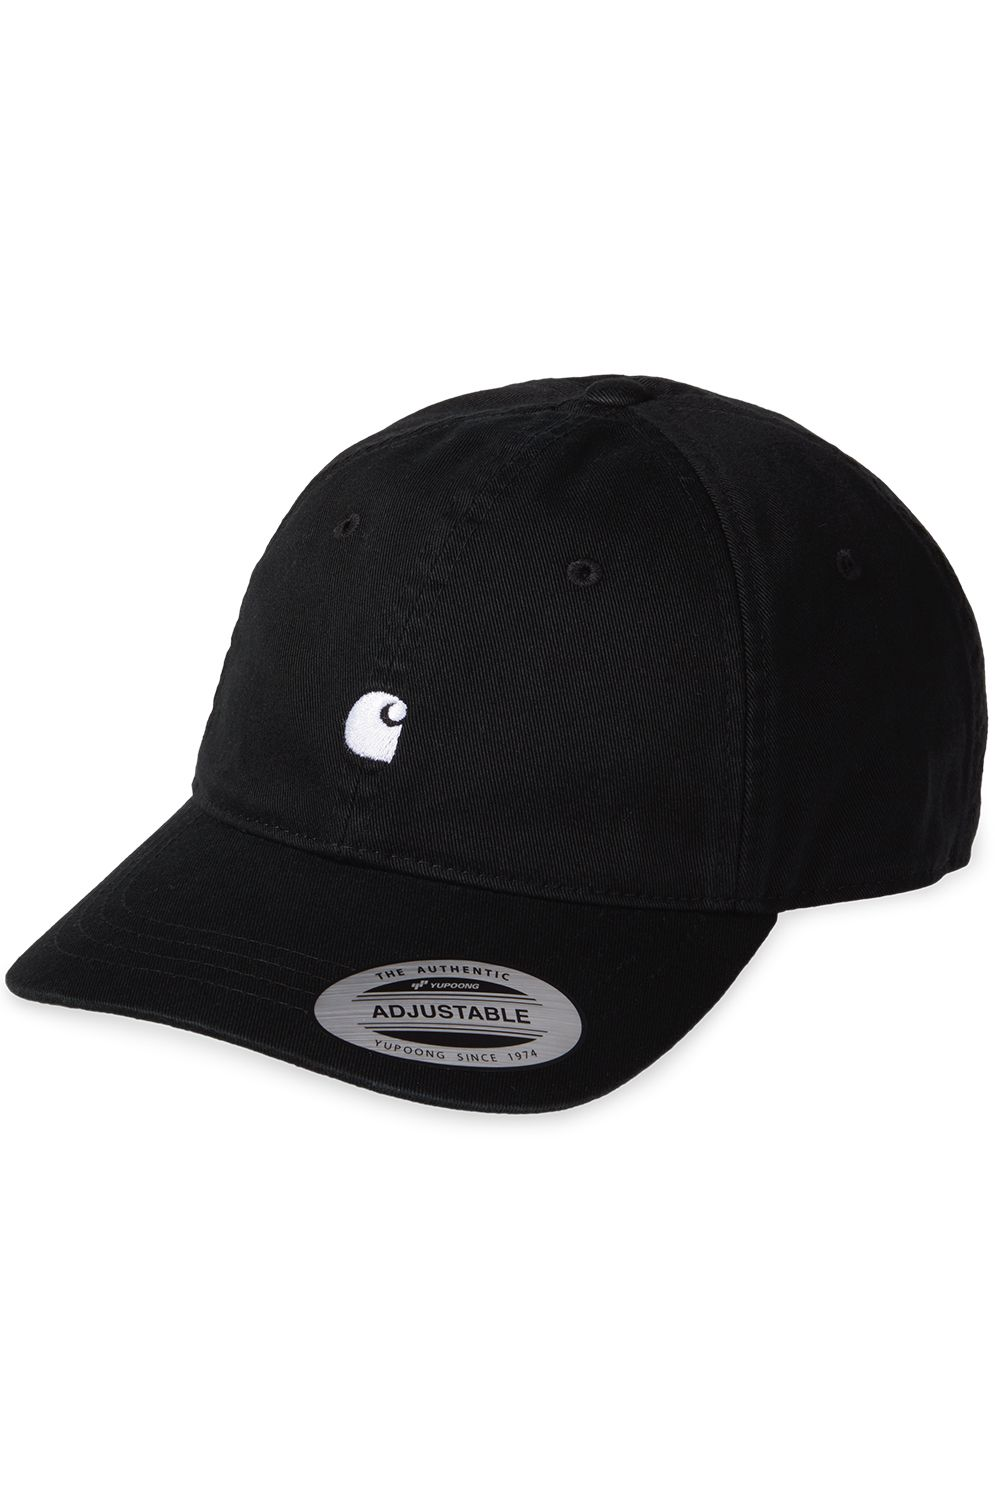 Carhartt WIP Cap   MADISON LOGO Black/Wax